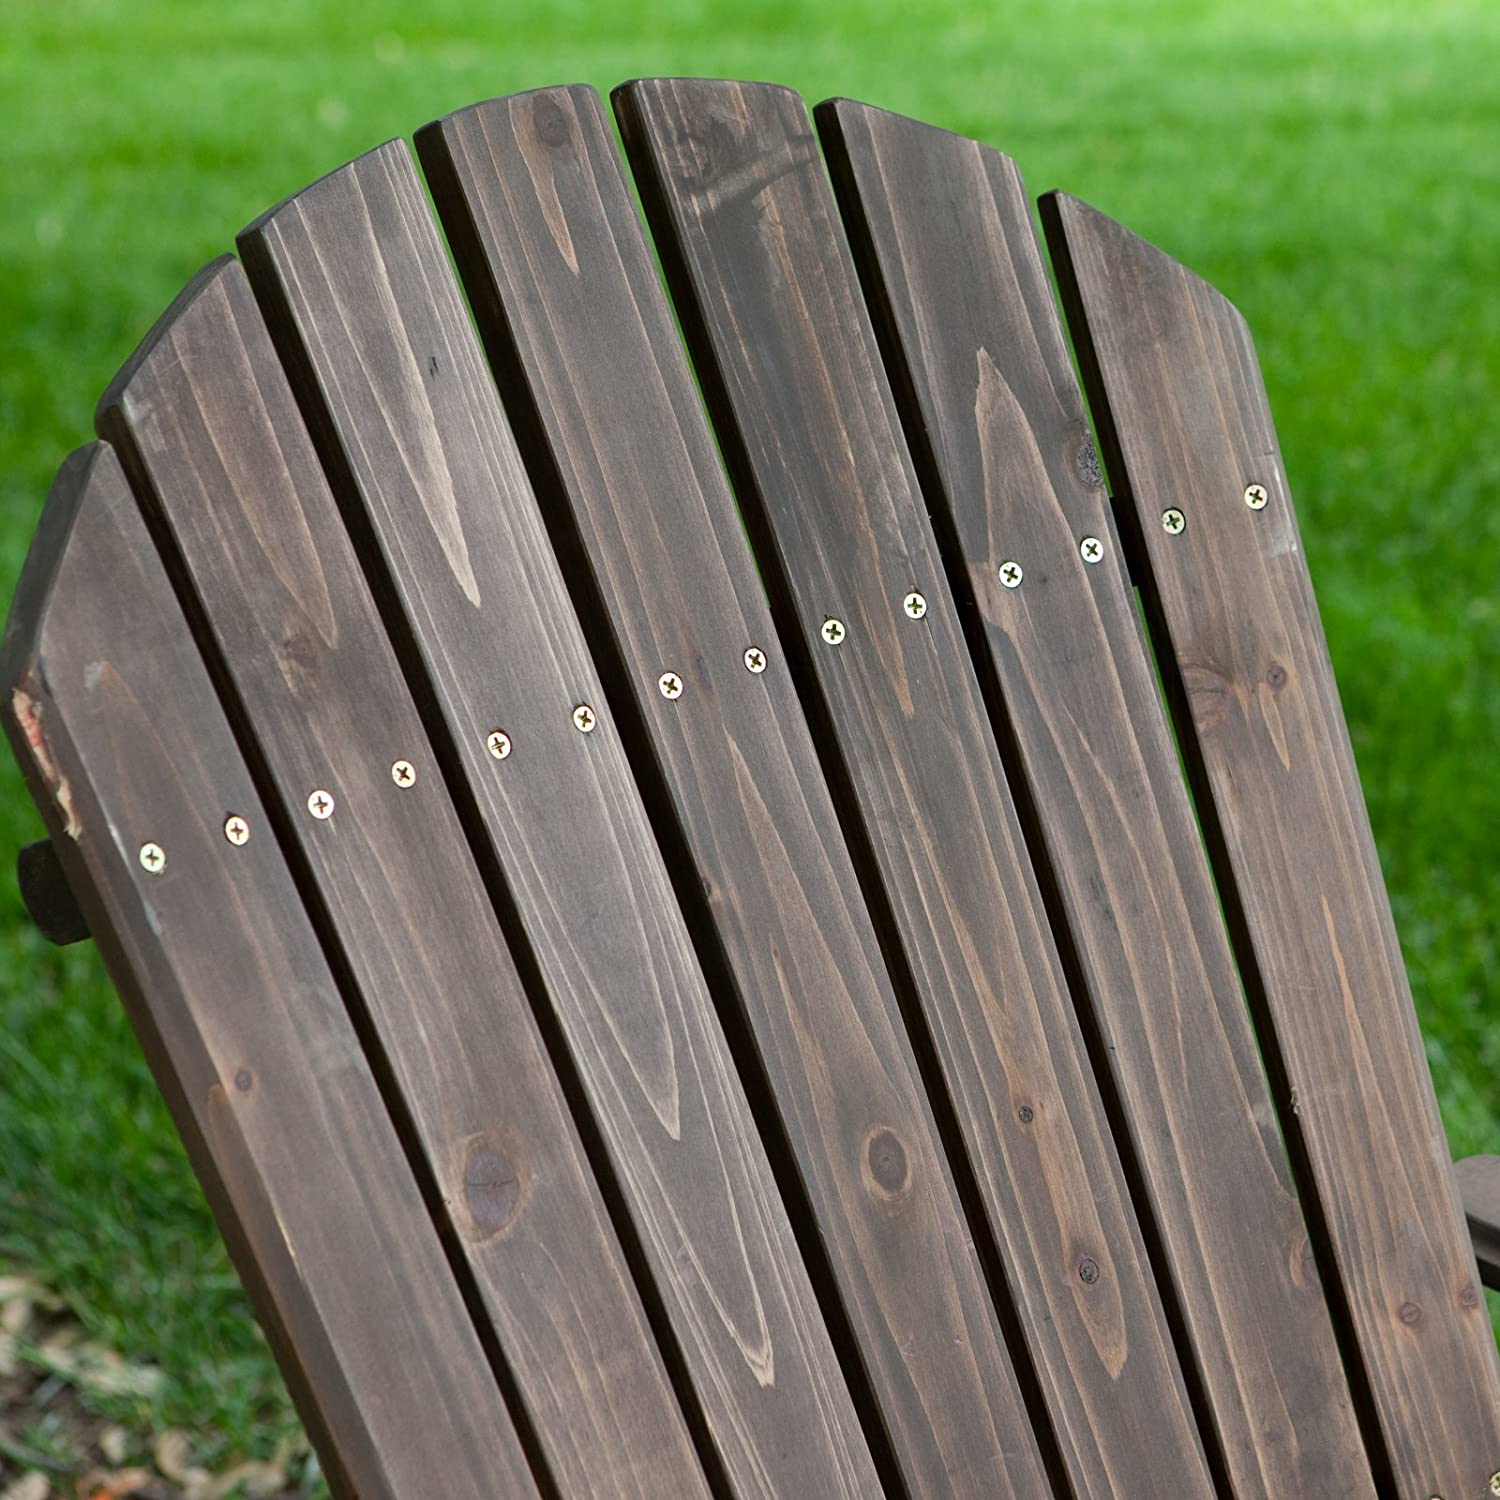 Amazon.com : Coral Coast Big Daddy Coral Coast Reclining Adirondack Chair  With Pull Out Ottoman  Dark, Brown, Wood, 31W X 62D X 32H Inches : Patio  Chair ...